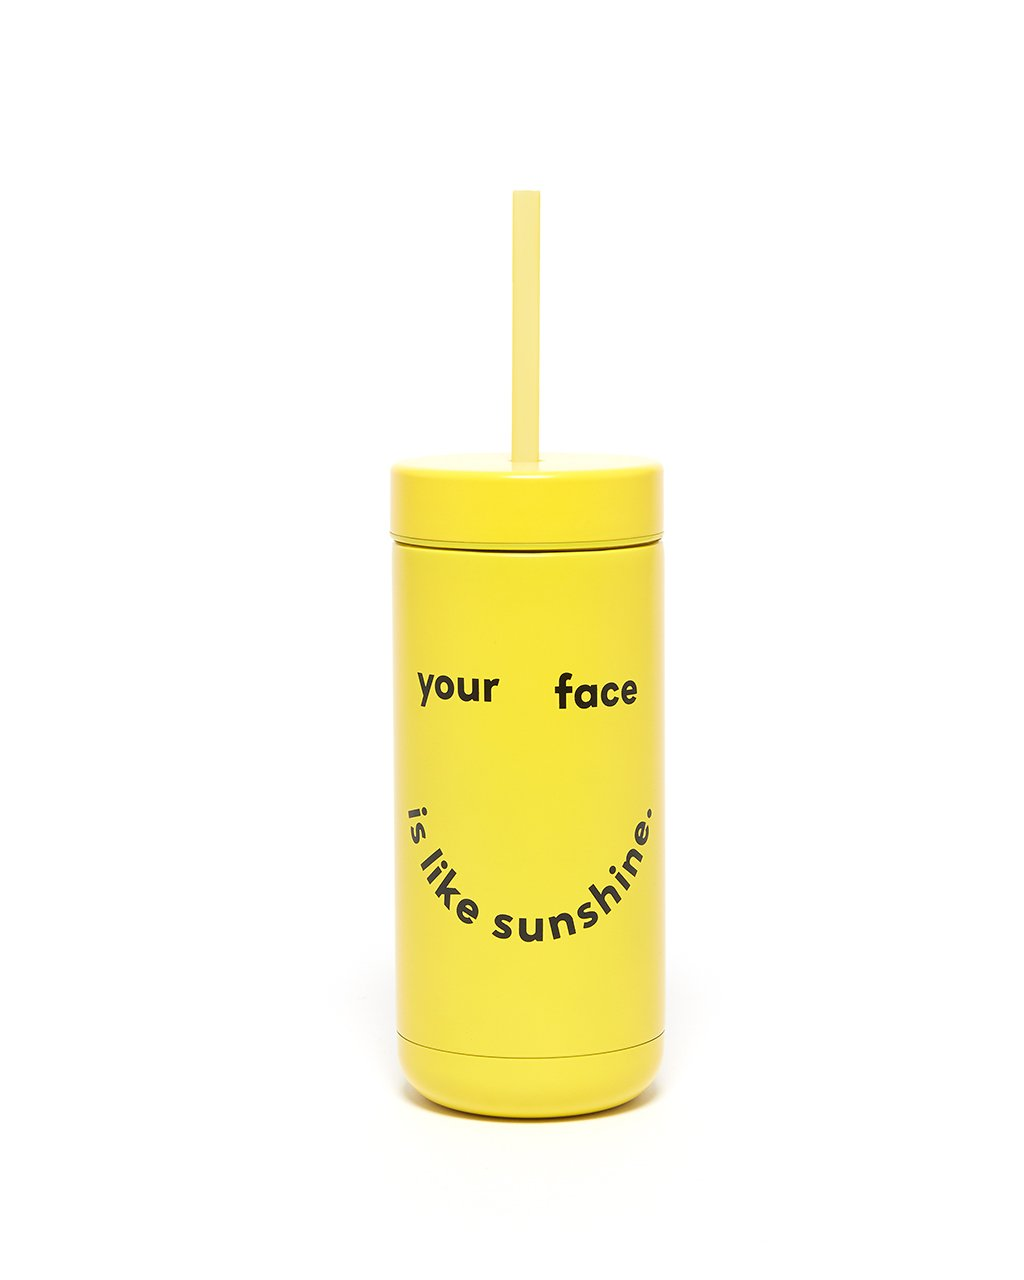 e783efcebf1 Stainless Steel Tumbler With Straw - Your Face Is Like Sunshine